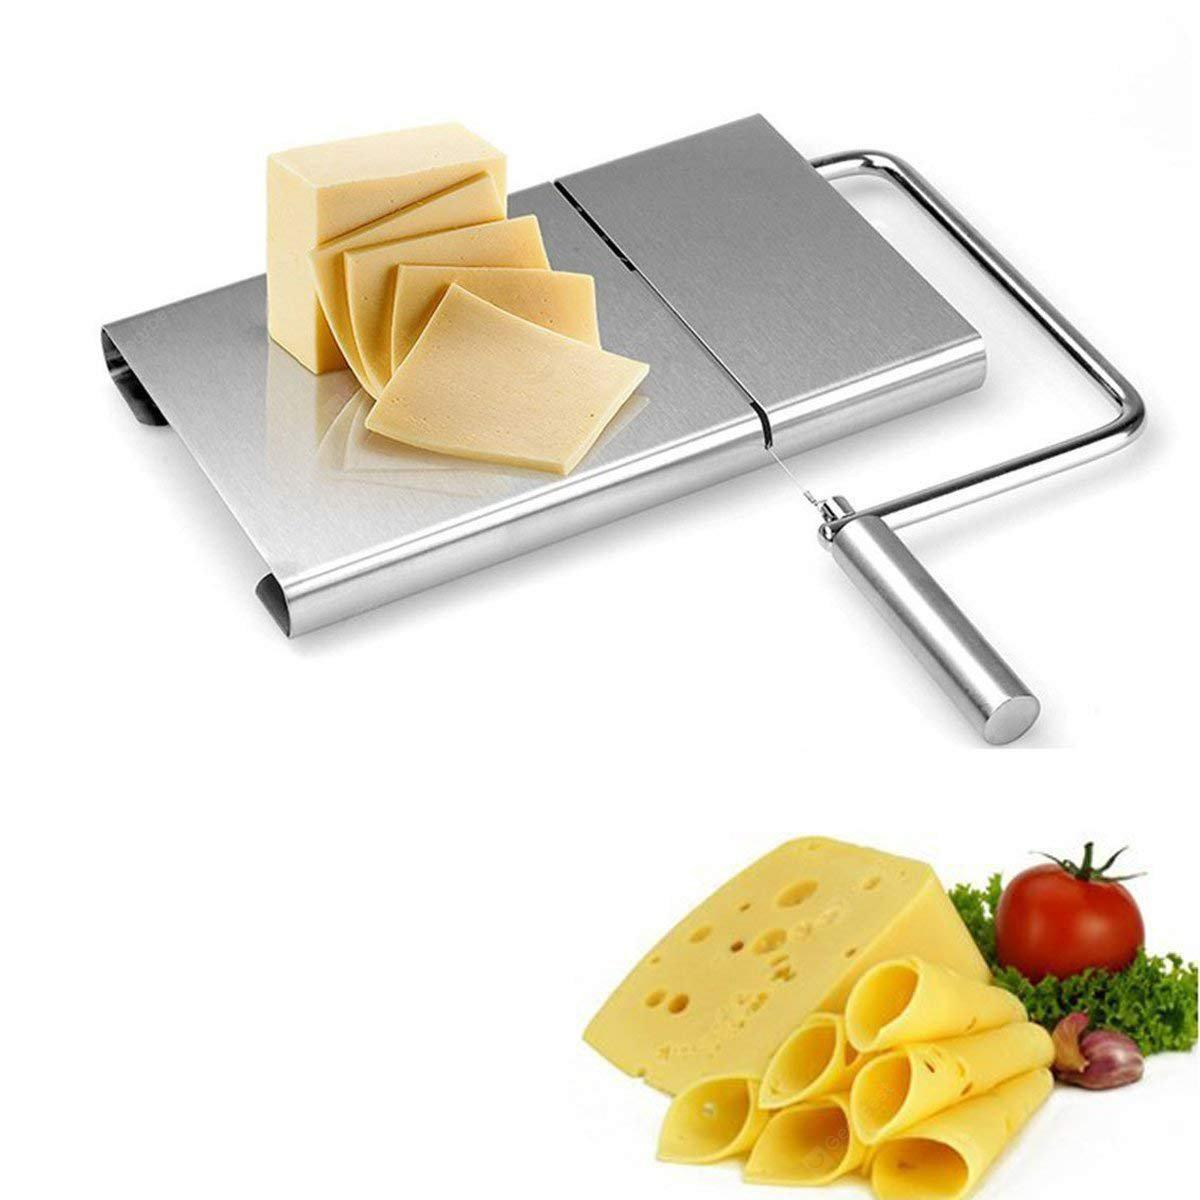 Image result for cheese slicer